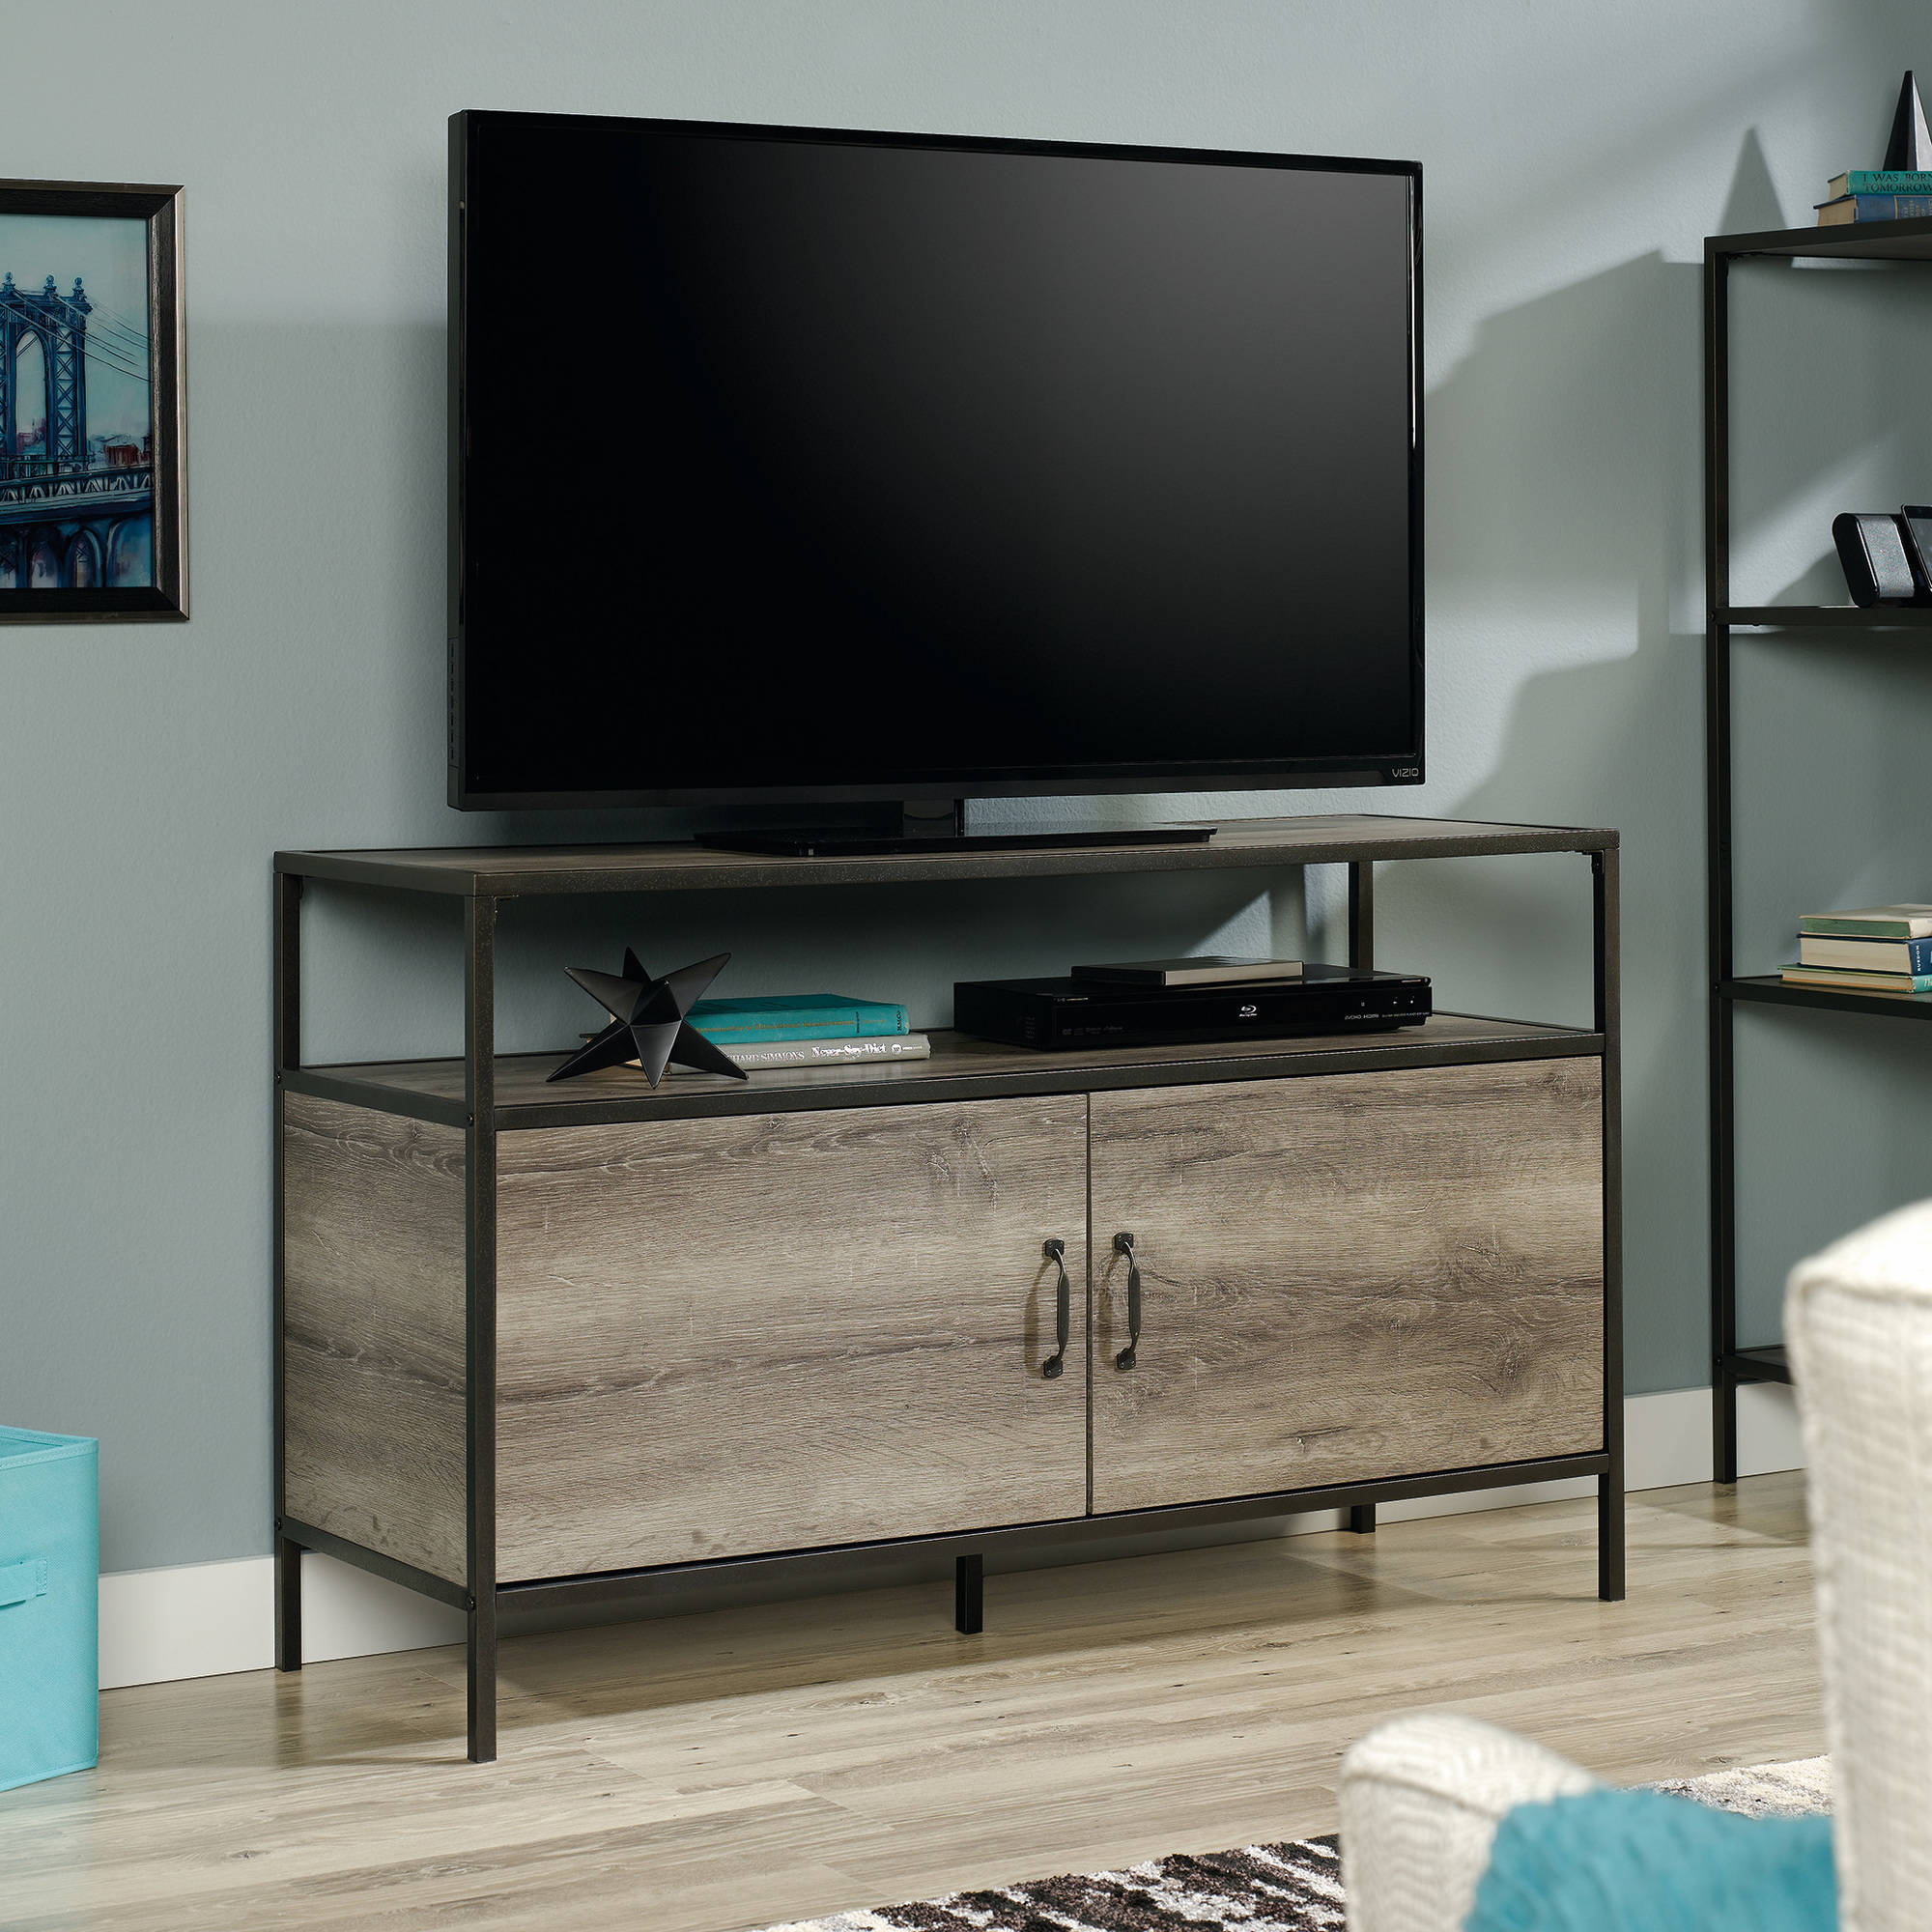 Mainstays Metro Tv Stand For Tvs Up To 50 Multiple Finishes